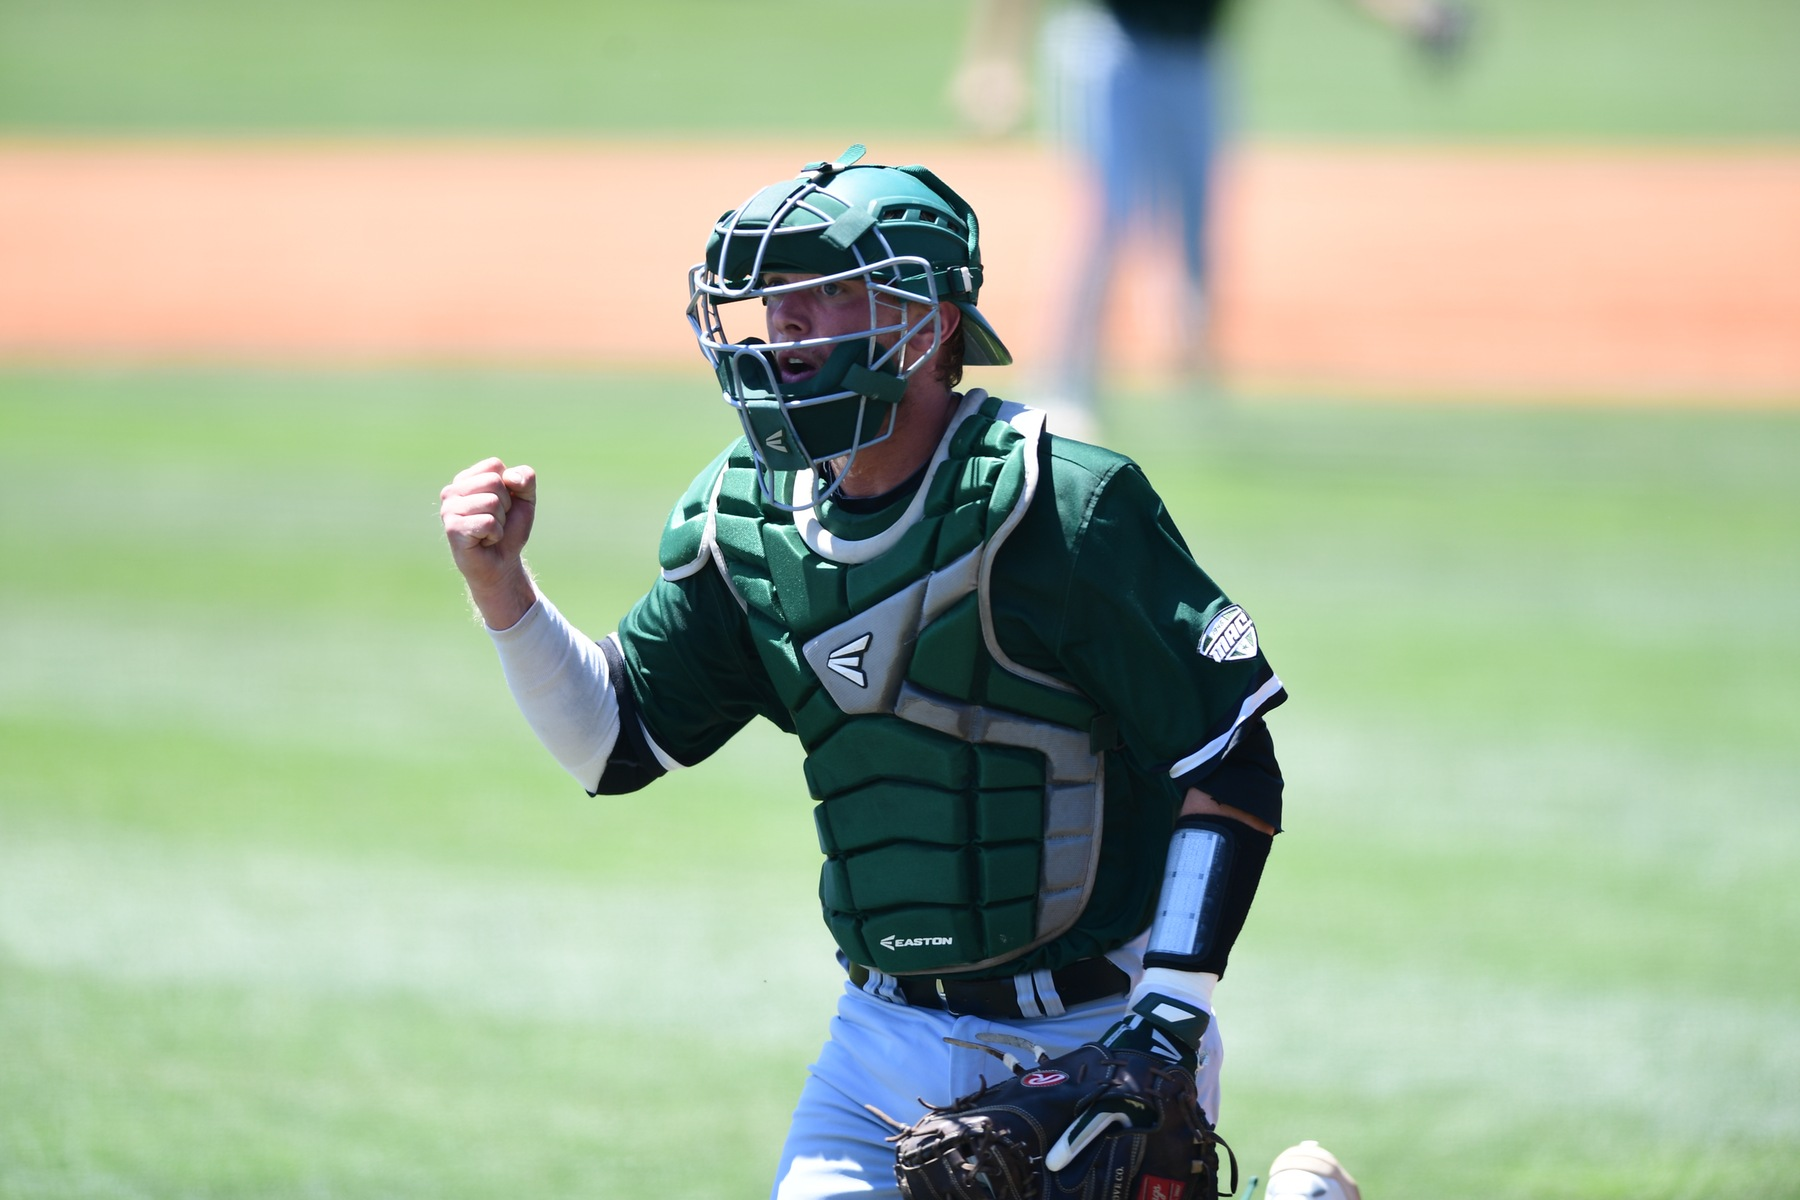 Ohio Baseball Begins 2018 Season With Four-Game Set Against Rider